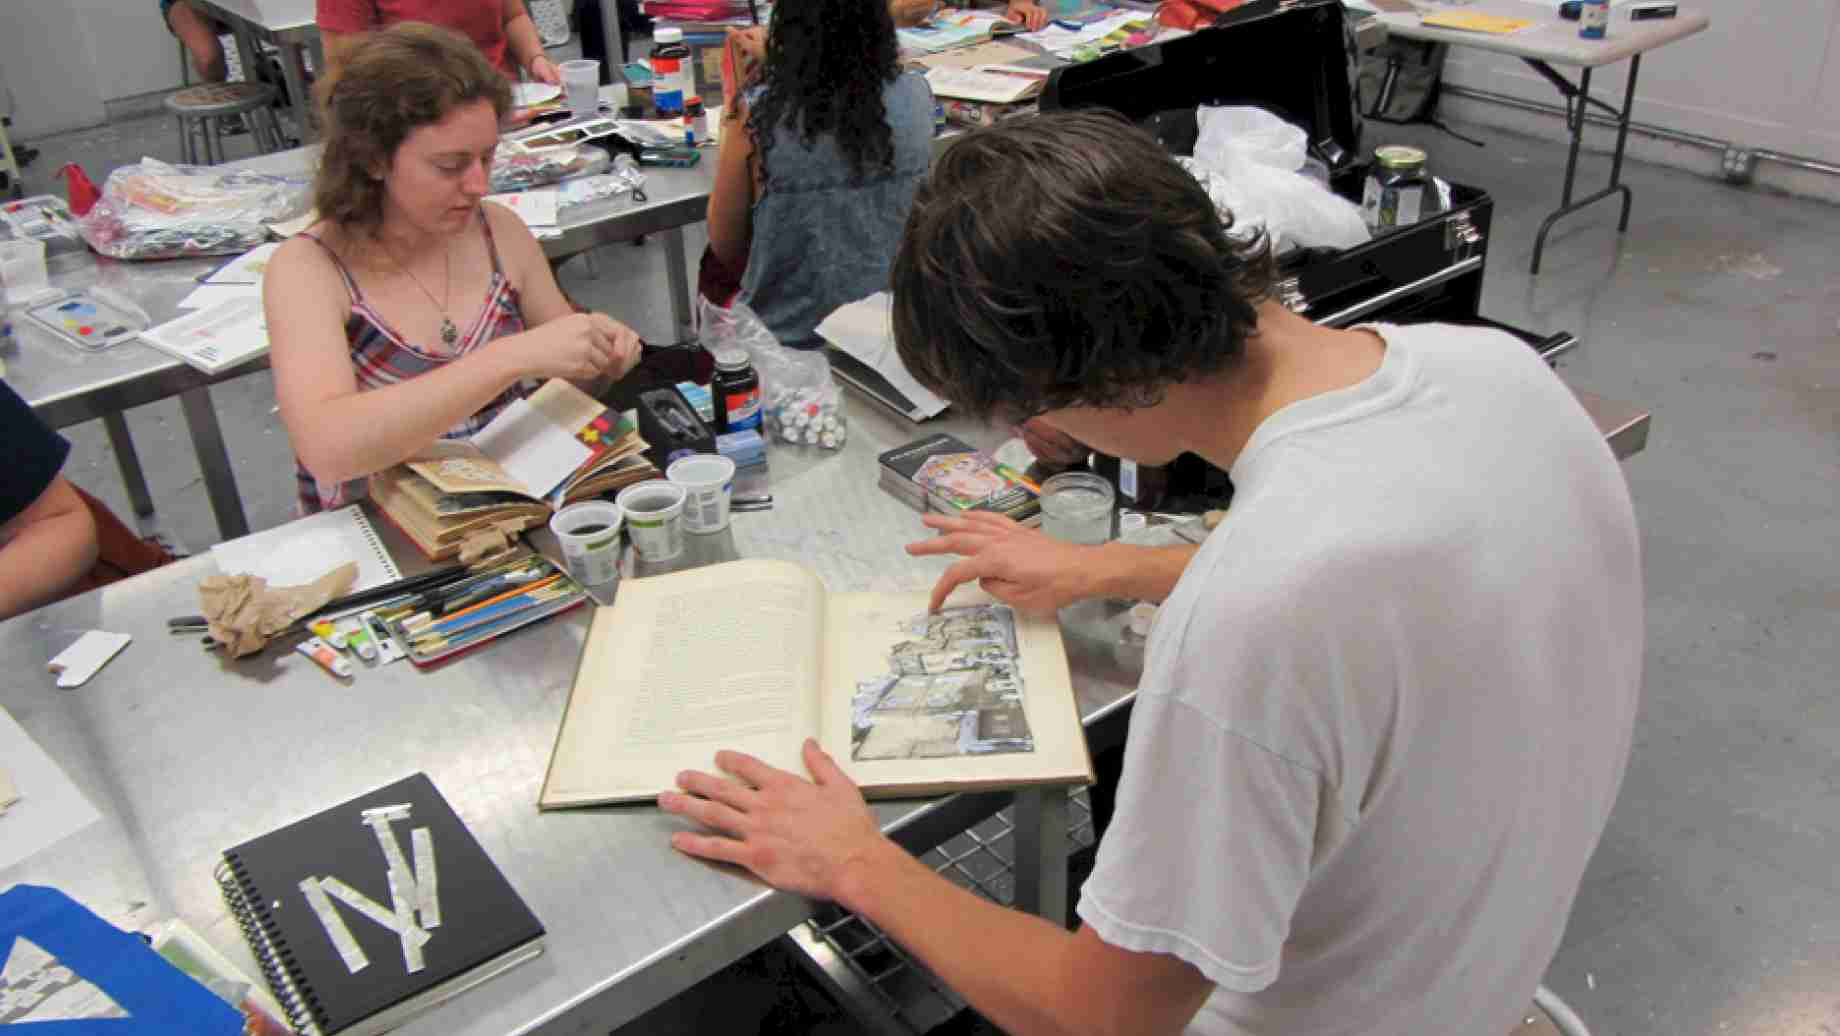 Sketchbook: Students learn to transform existing material into projects that resonate with new associations